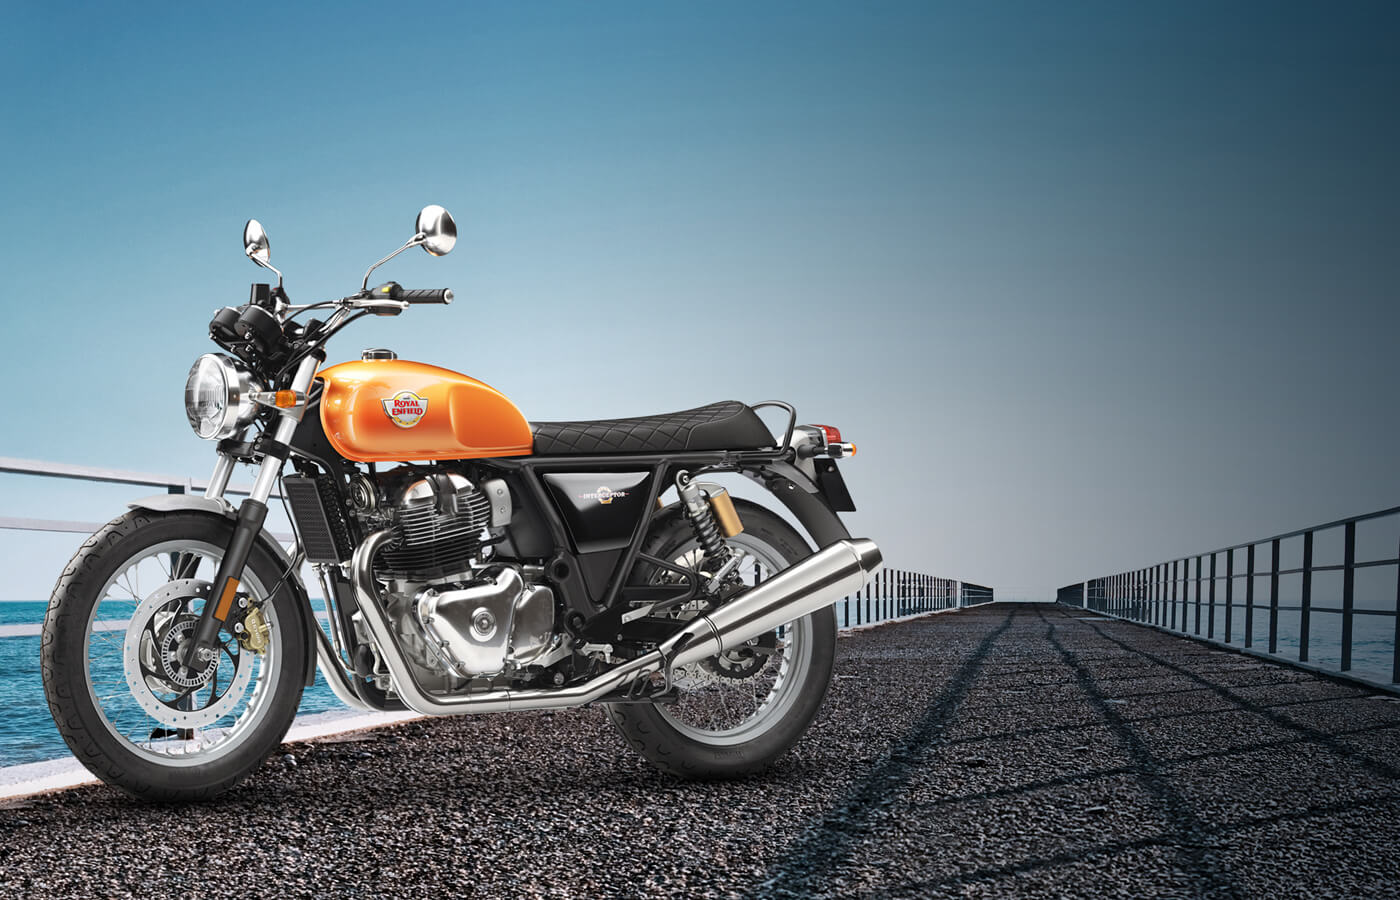 Royal Enfield Interceptor 650 Photo Specification Price